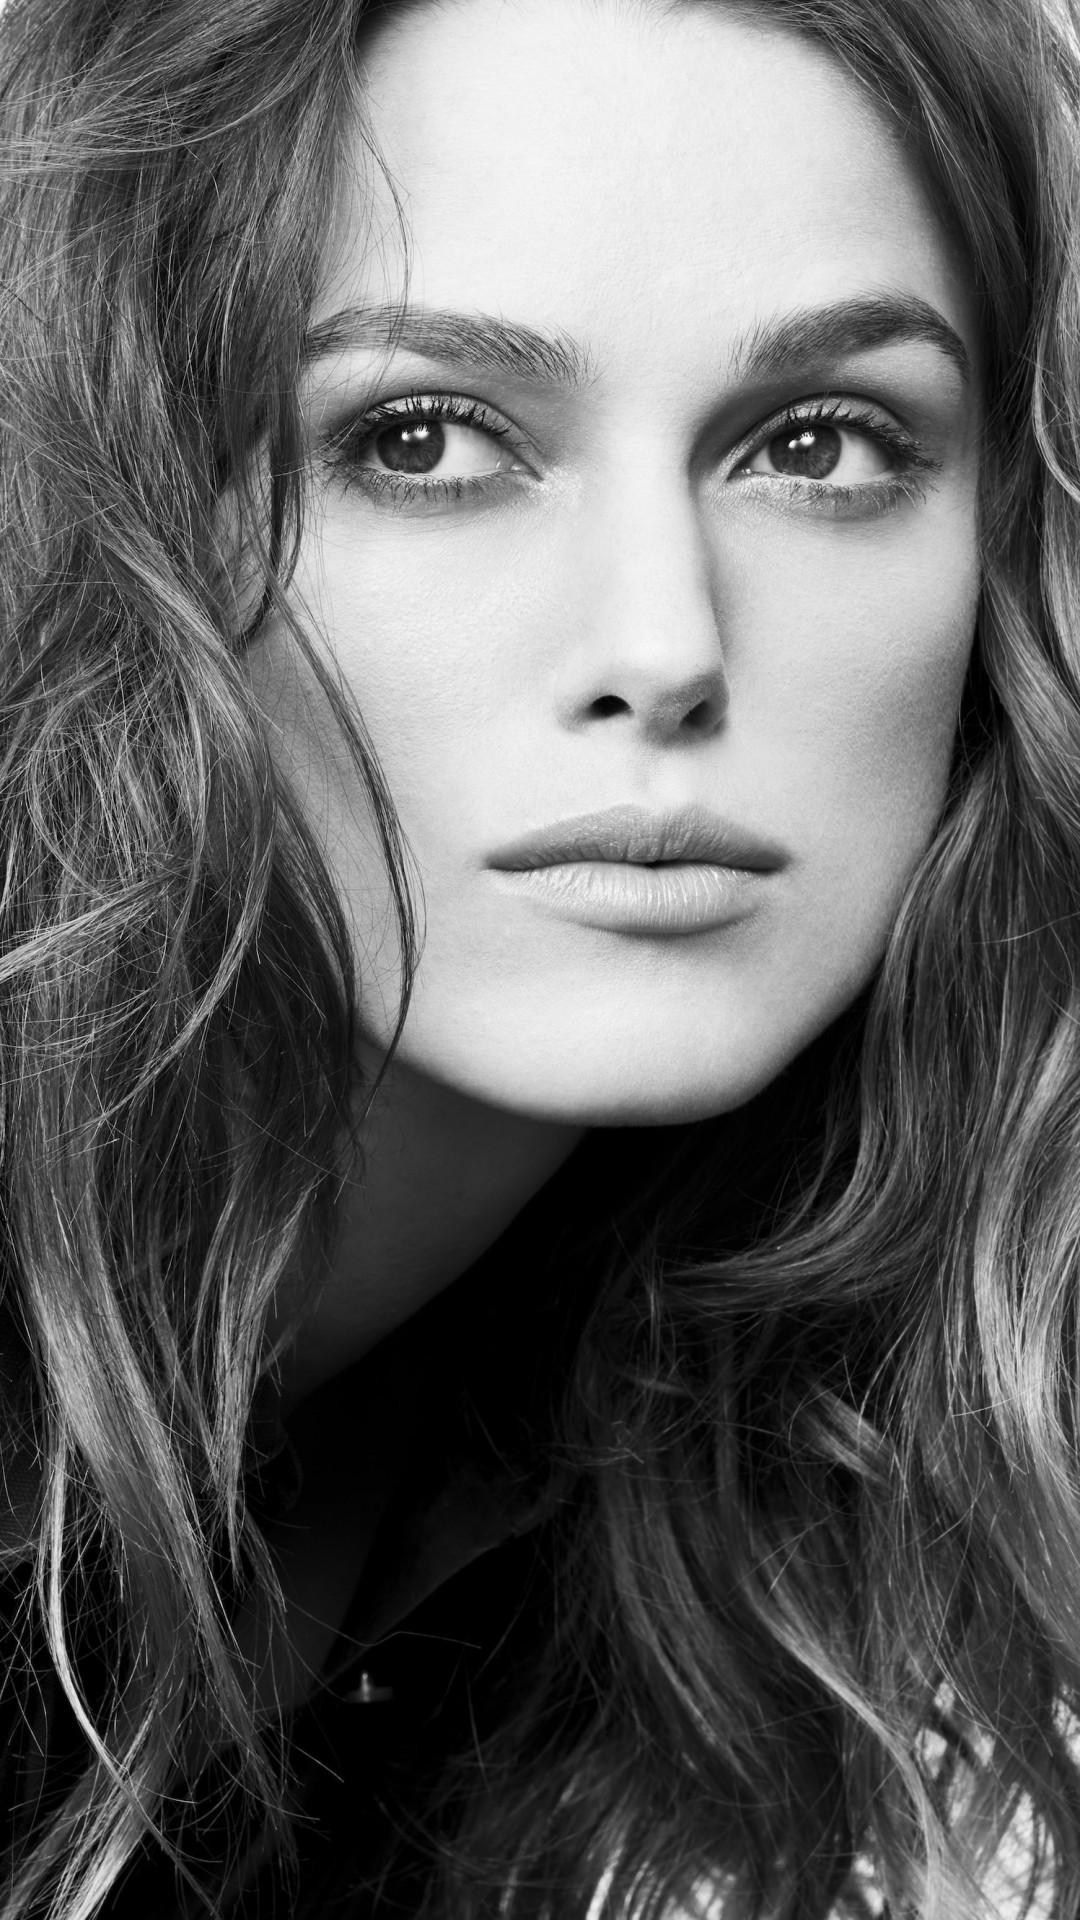 Keira Knightley in Black & White Wallpaper for LG G2